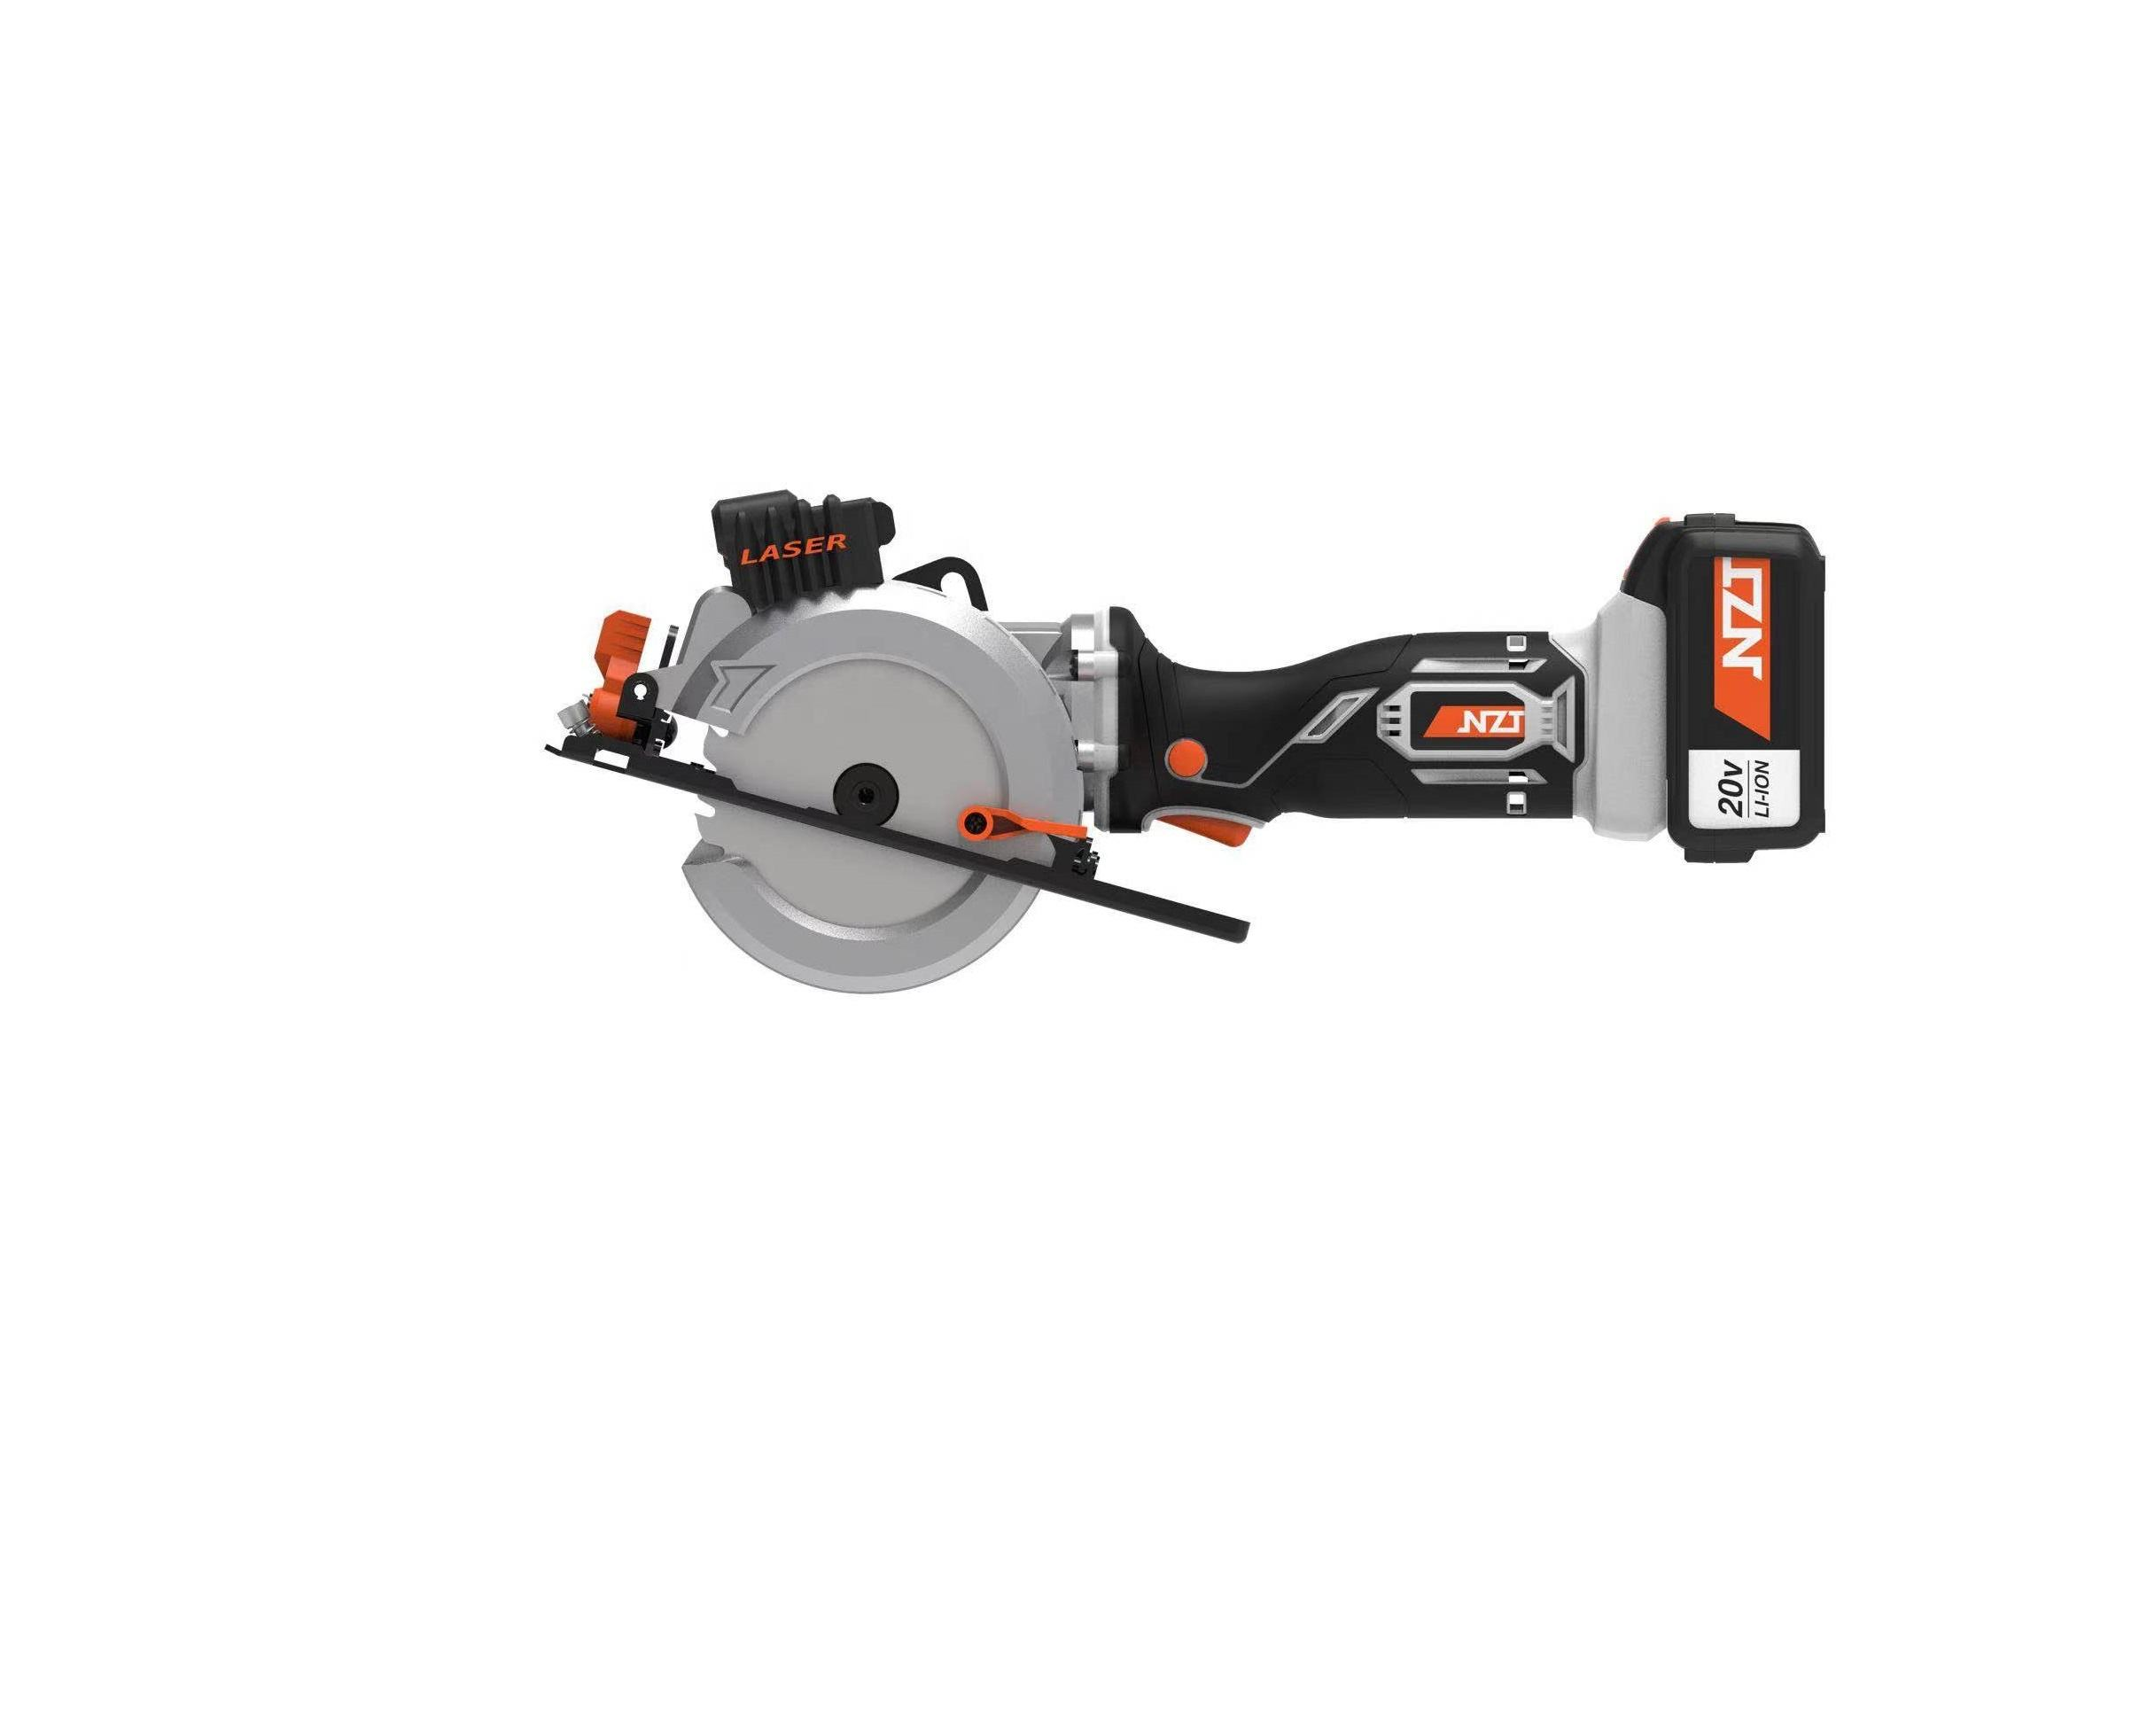 Cordless high quality electric hand-held mini circular saw